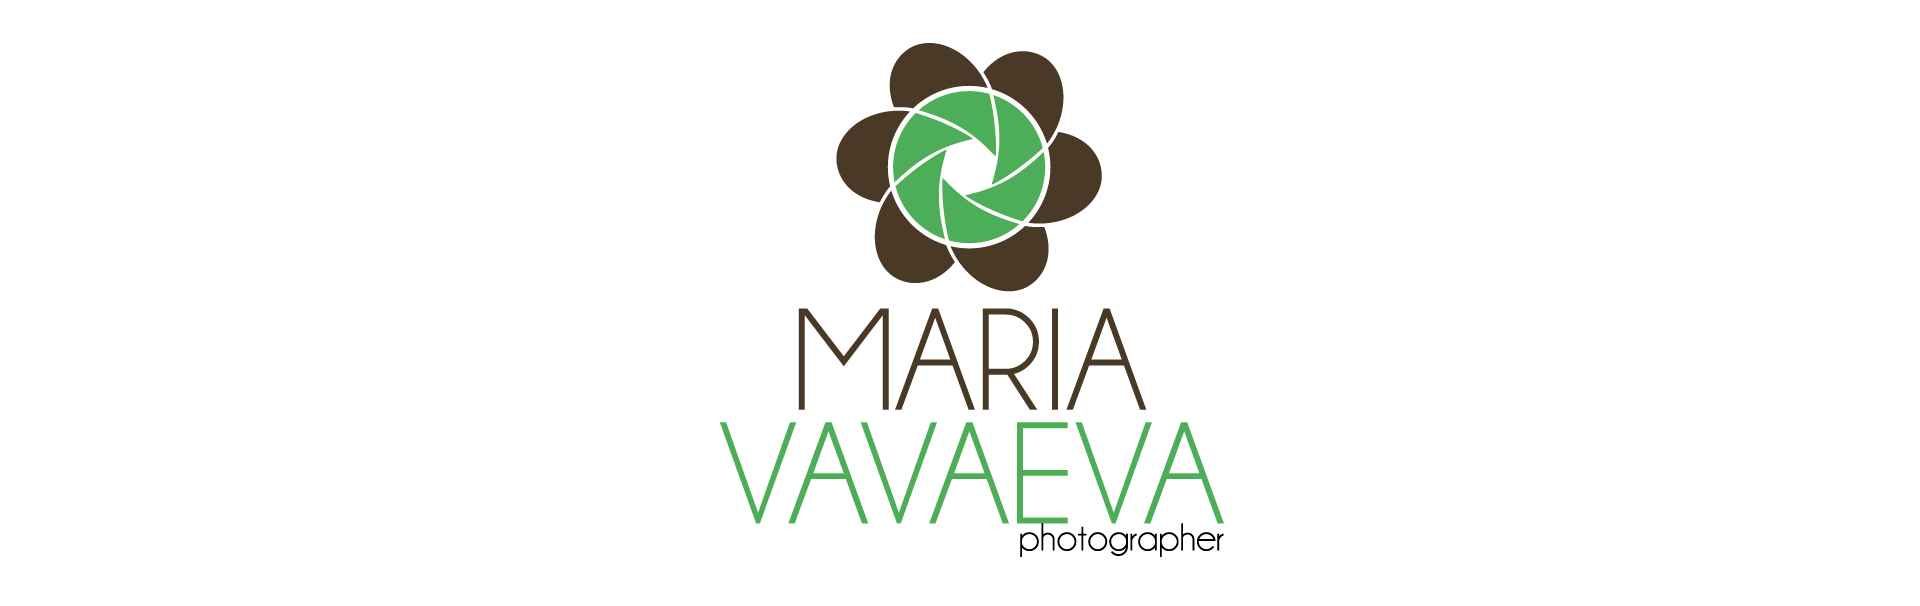 logotype-for-vavaeva-1-1